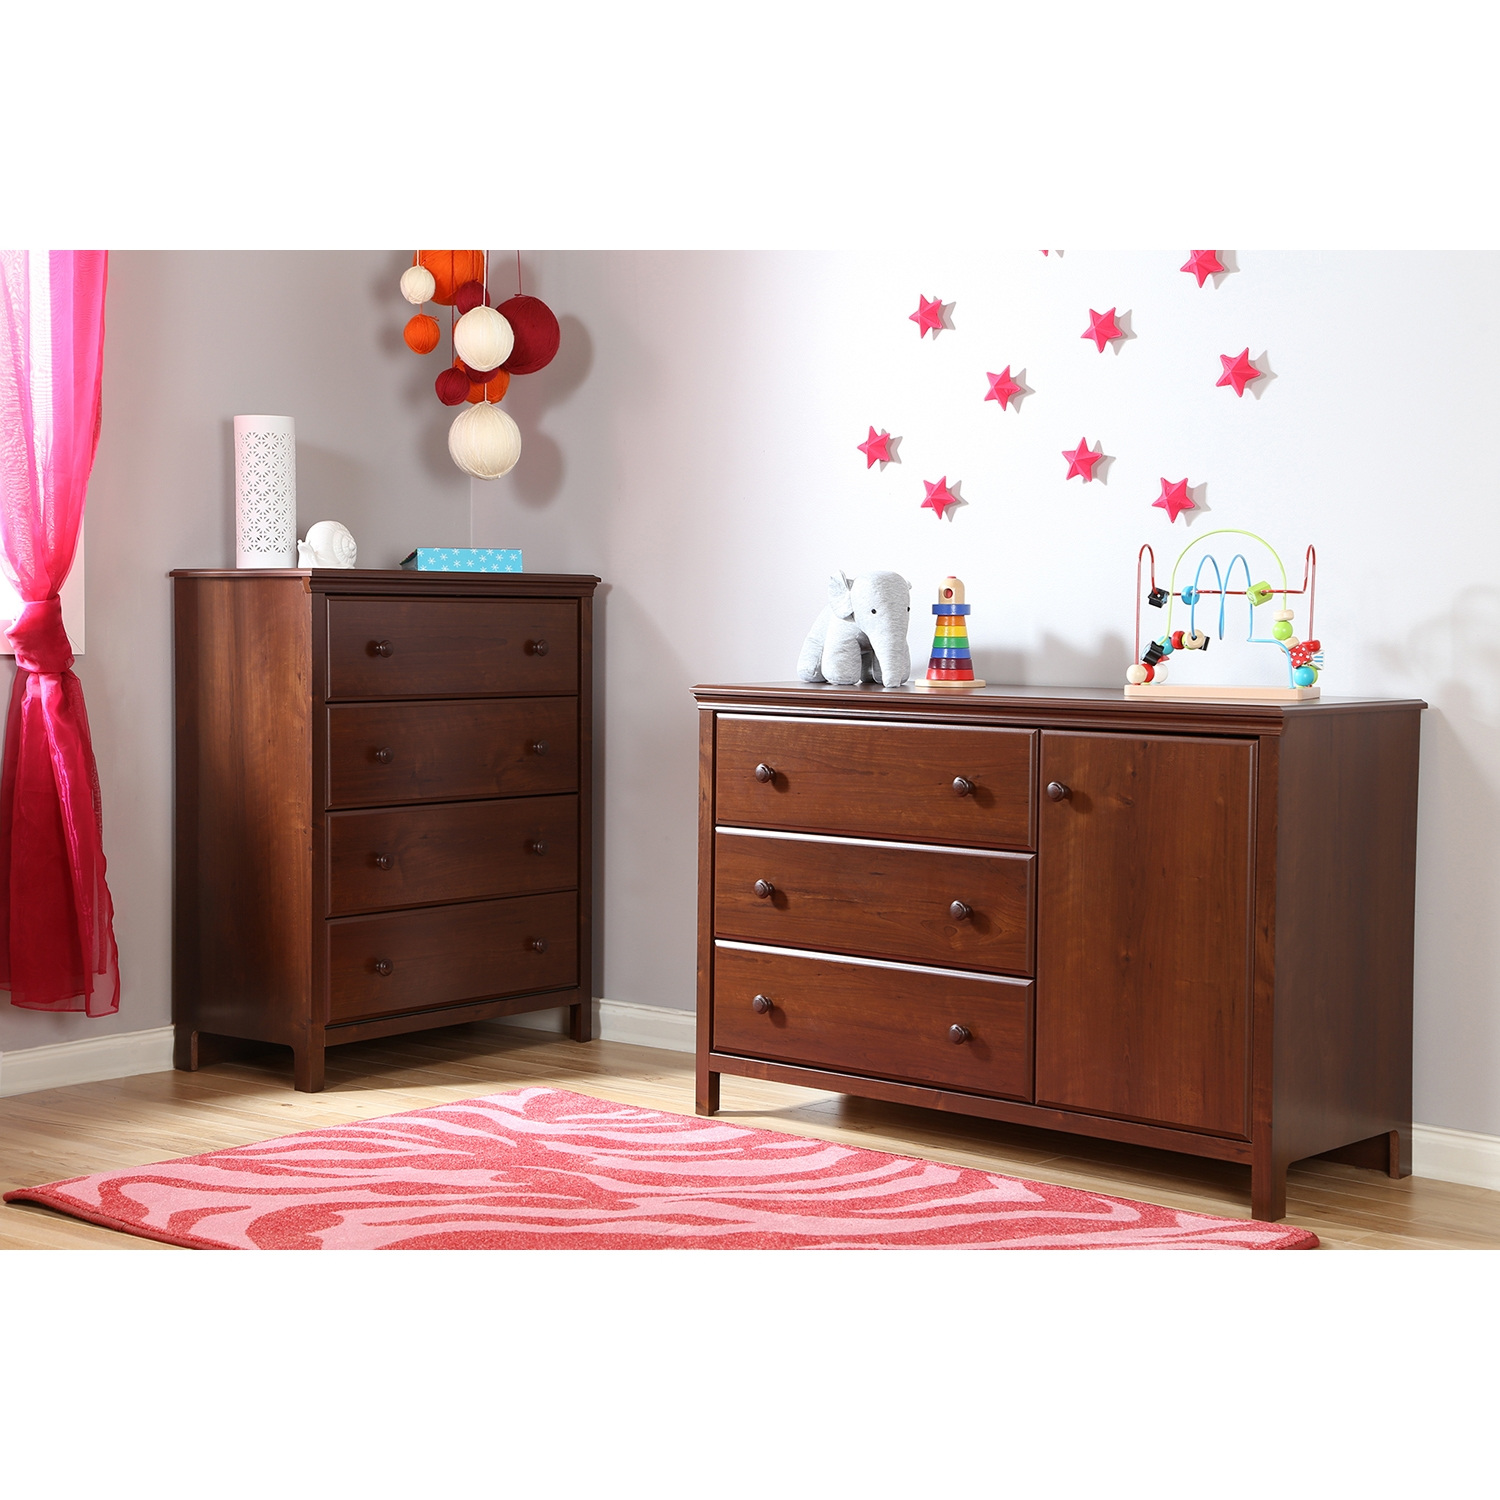 Cotton Candy Changing Table - Removable Changing Station, Sumptuous Cherry - SS-3456333